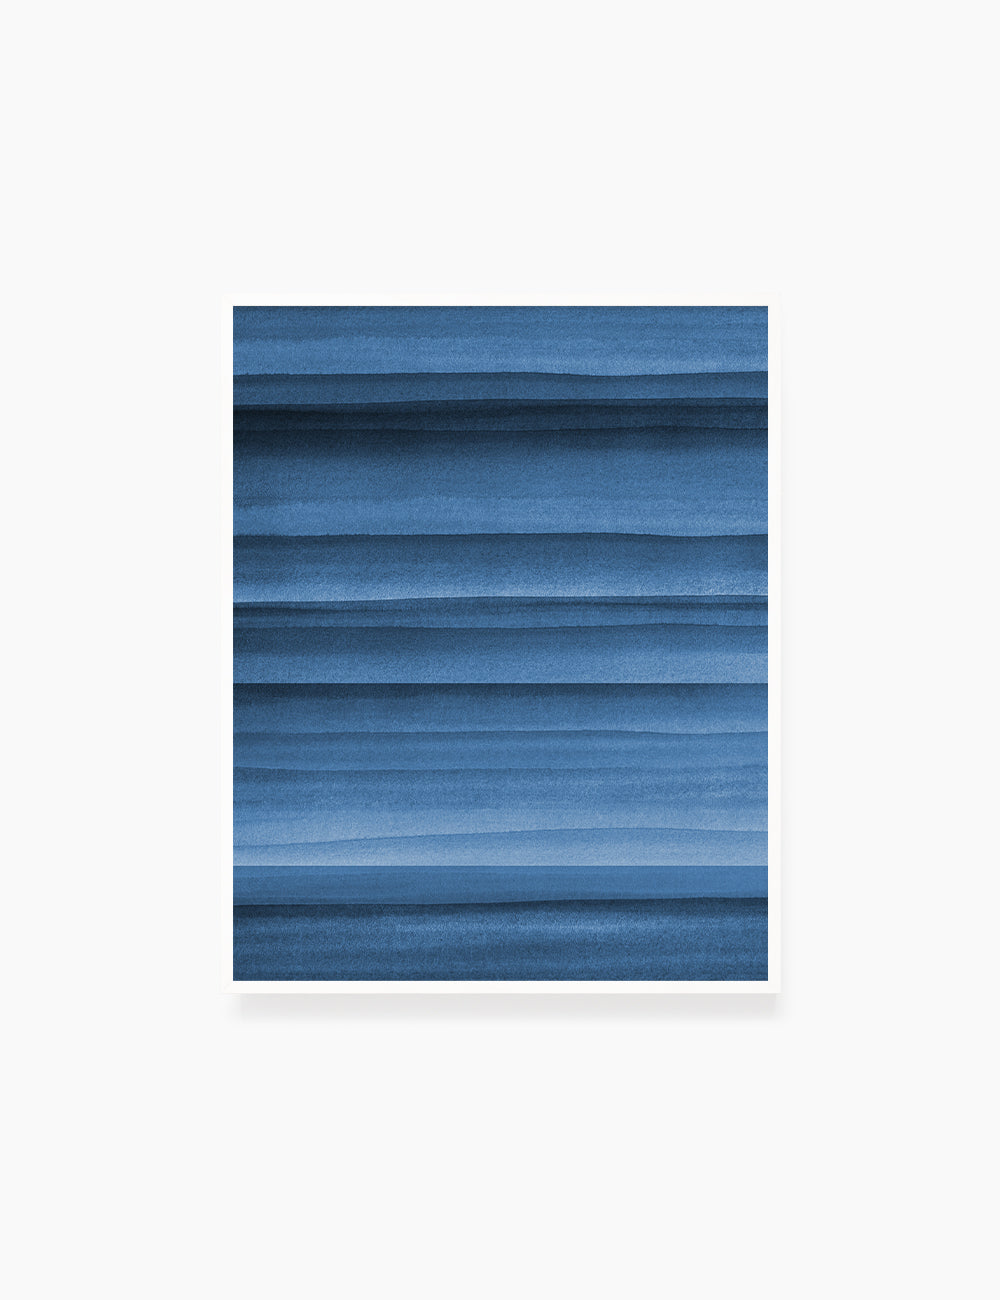 BLUE OCEAN WAVES. WATERCOLOR PAINTING. Abstract Art. Printable Wall Art Illustration. - PAPER MOON Art & Design